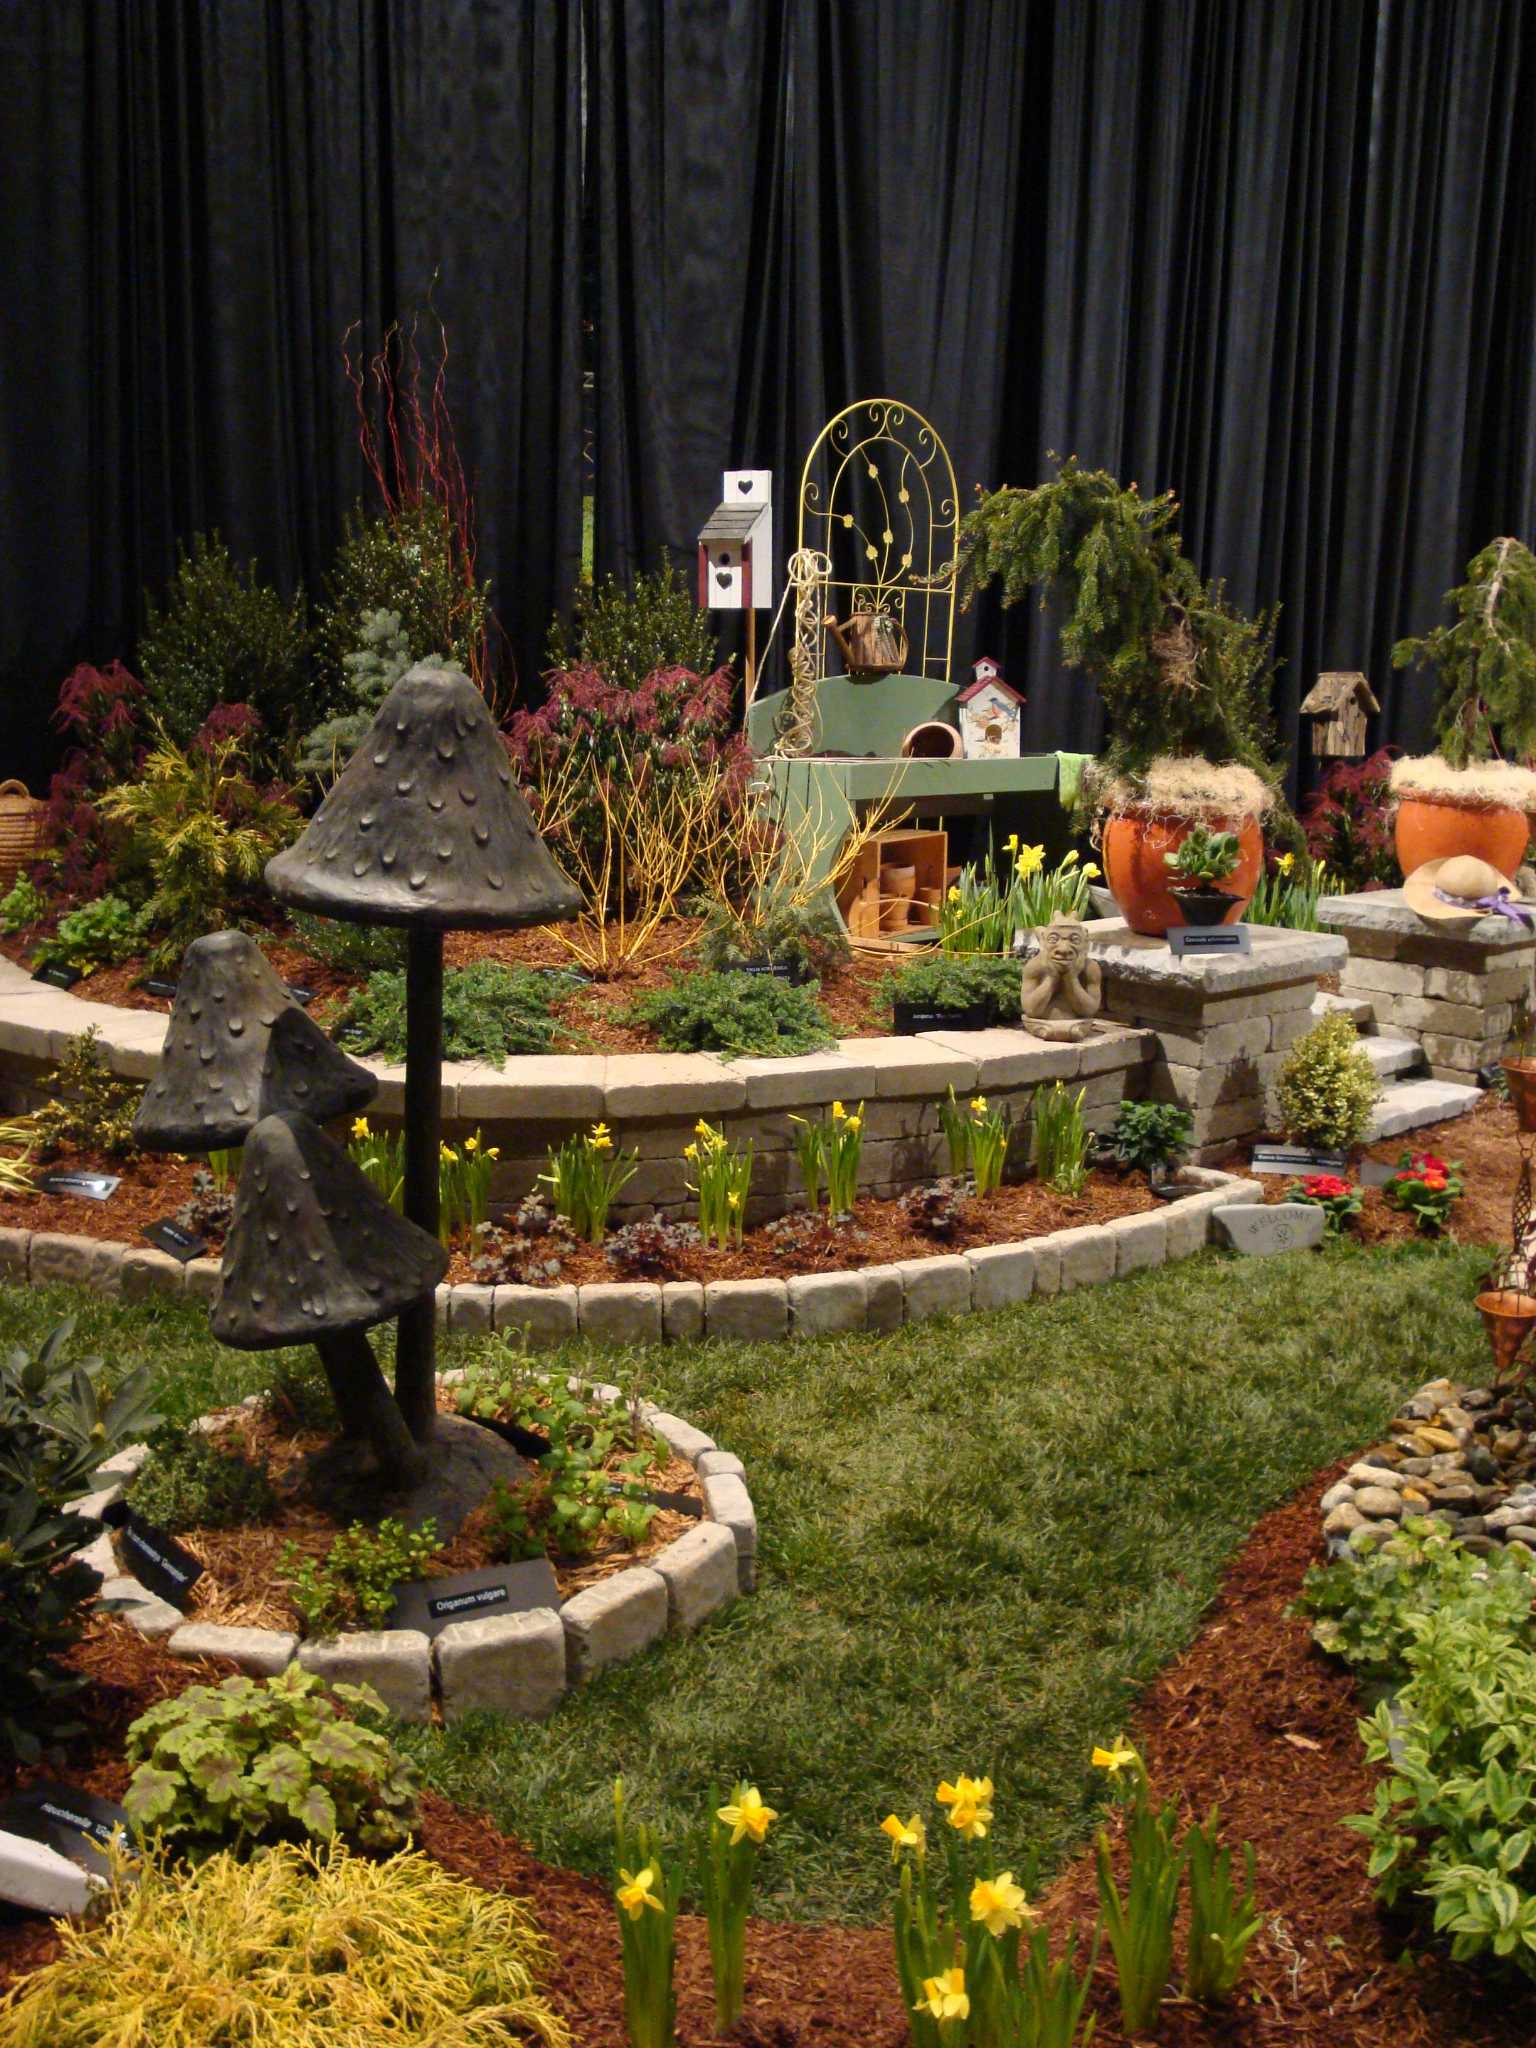 CT Flower & Garden Show means spring is coming - HoustonChronicle.com